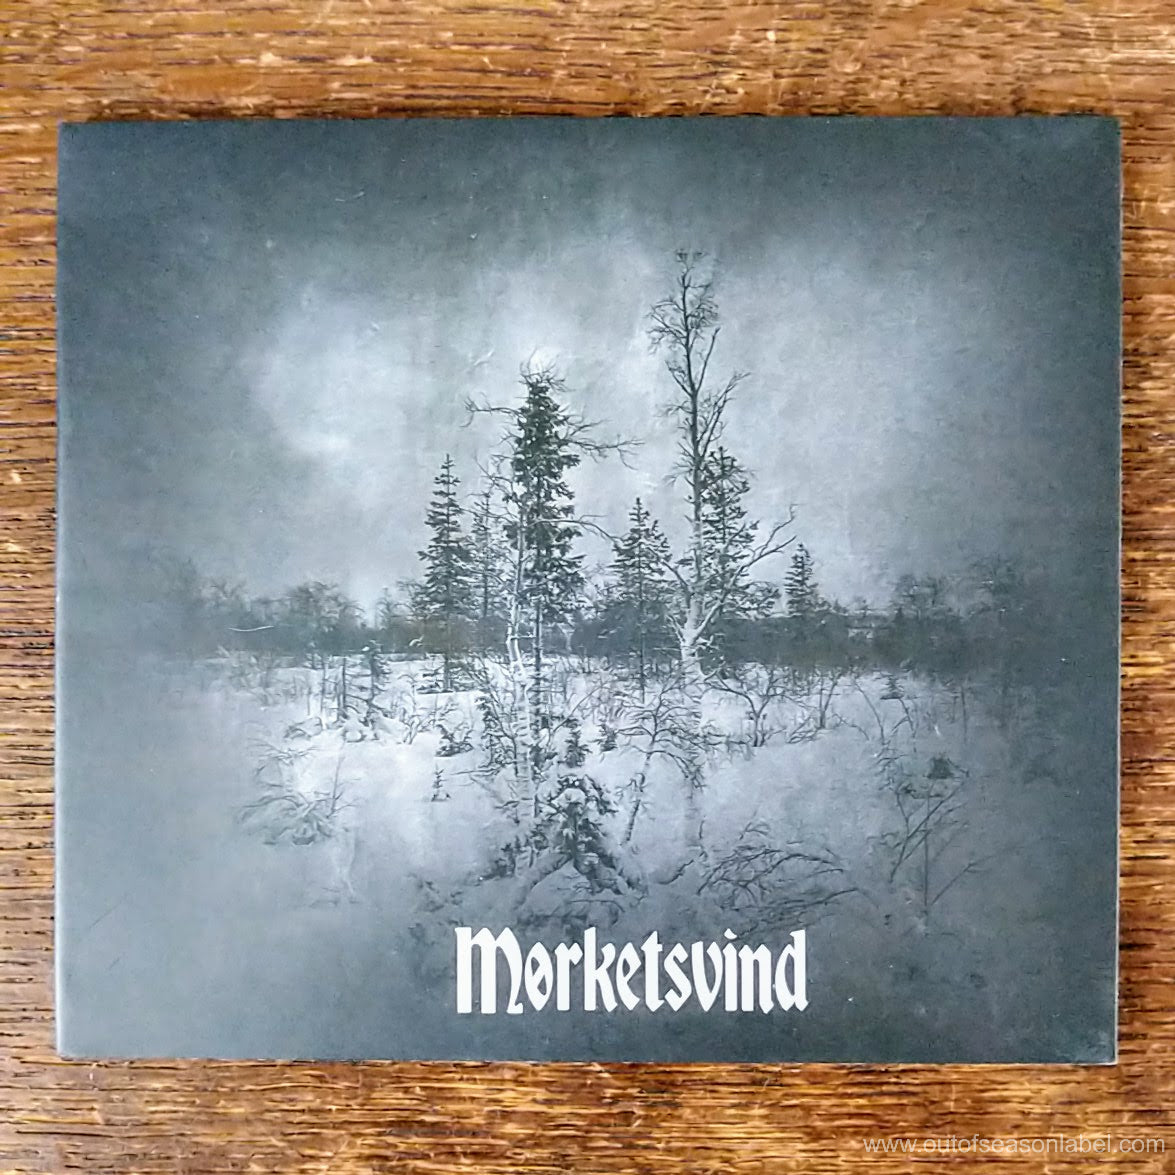 "MORKETSVIND ""Morketsvind"" CD"